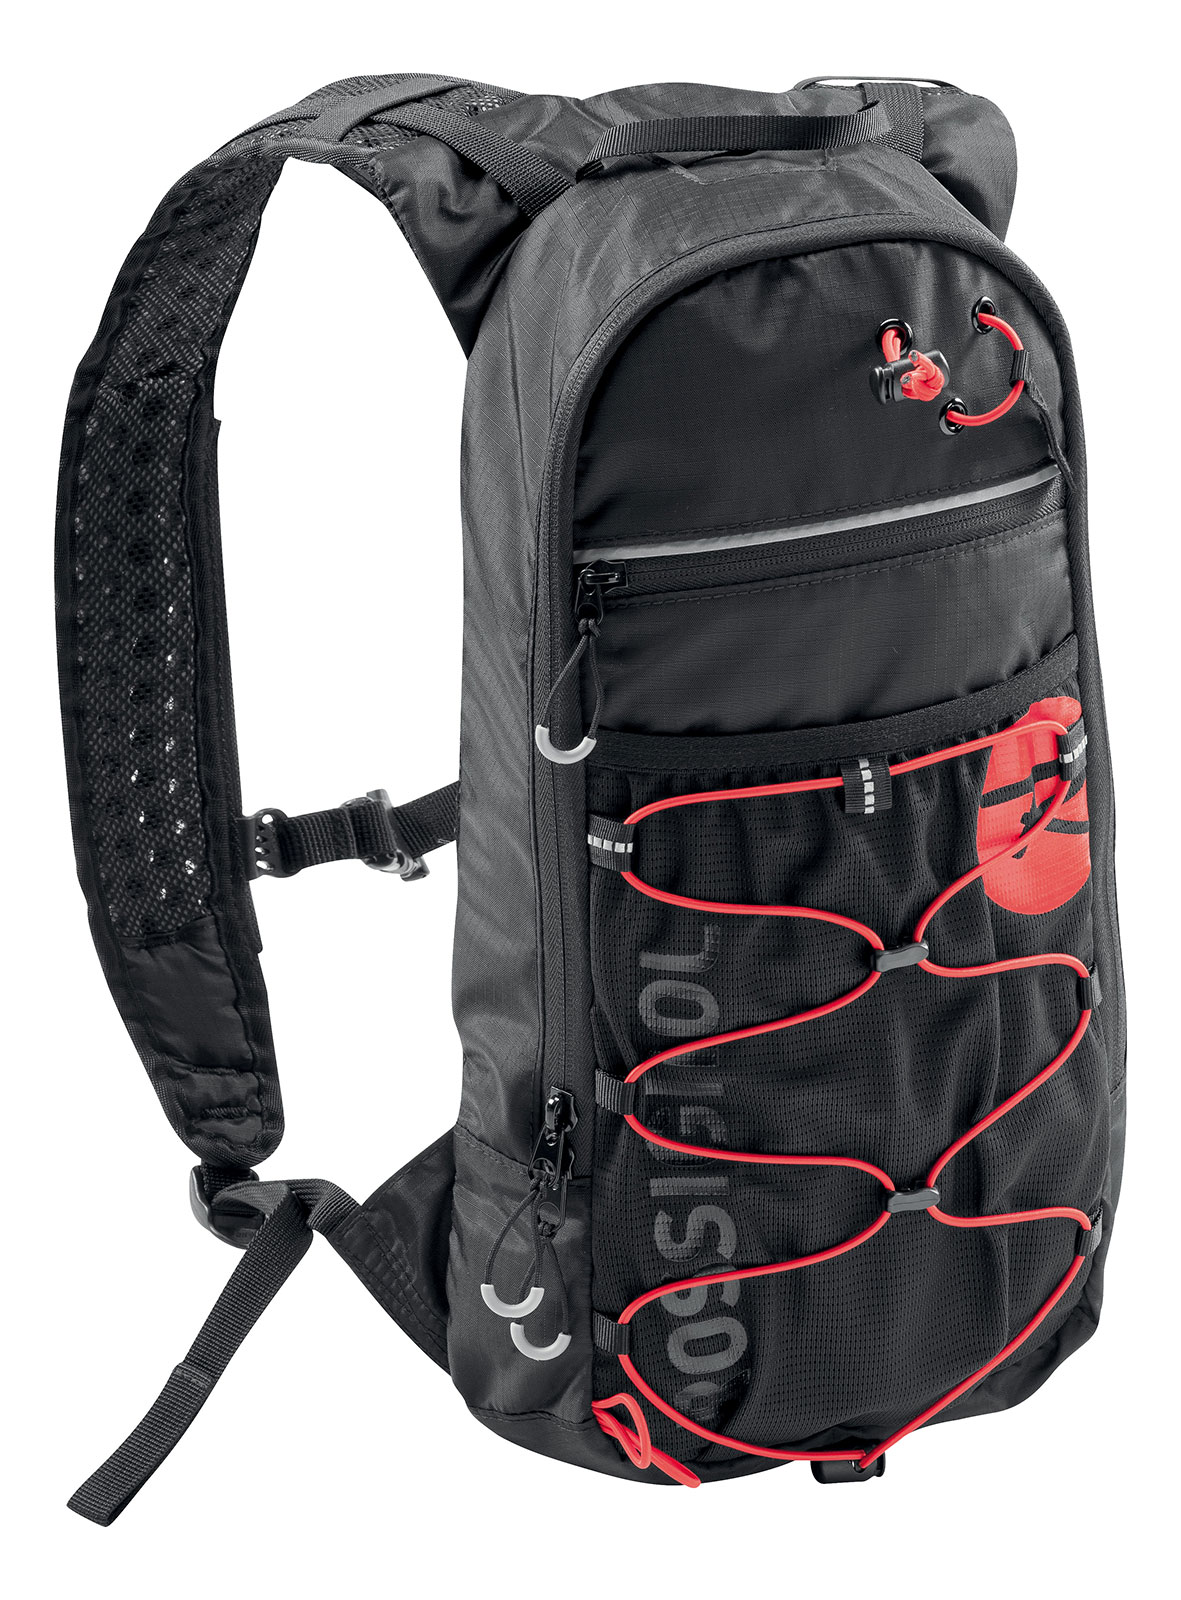 Rossignol Hydro Pack 10L Hydration Backpack Skiing Running Hiking Cycling by